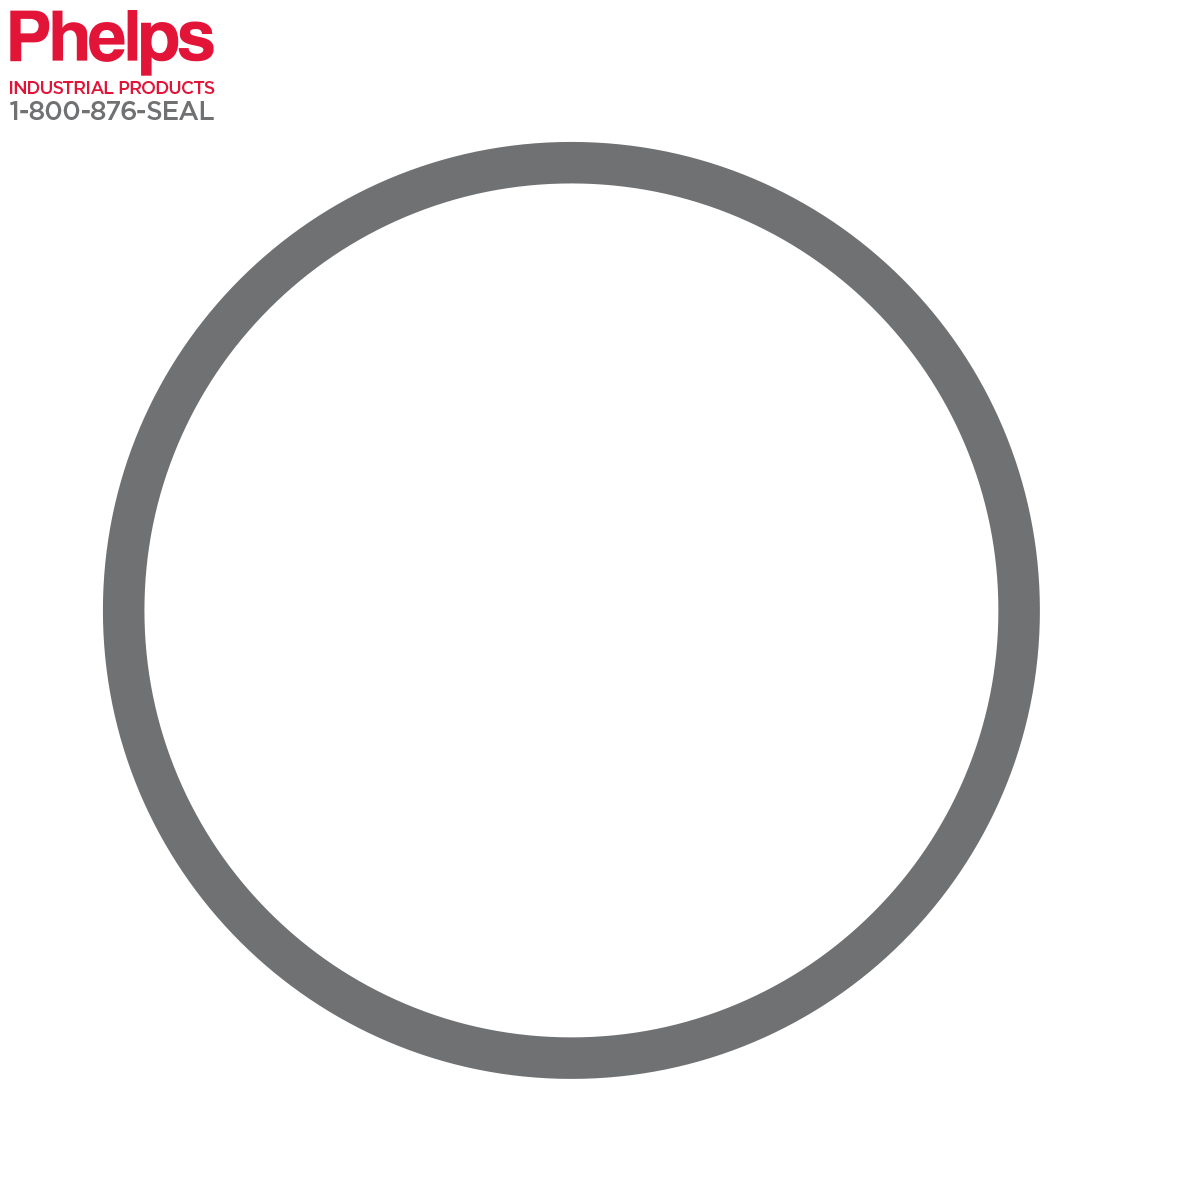 Topog-E Boiler Gasket - Round | Phelps Industrial Products